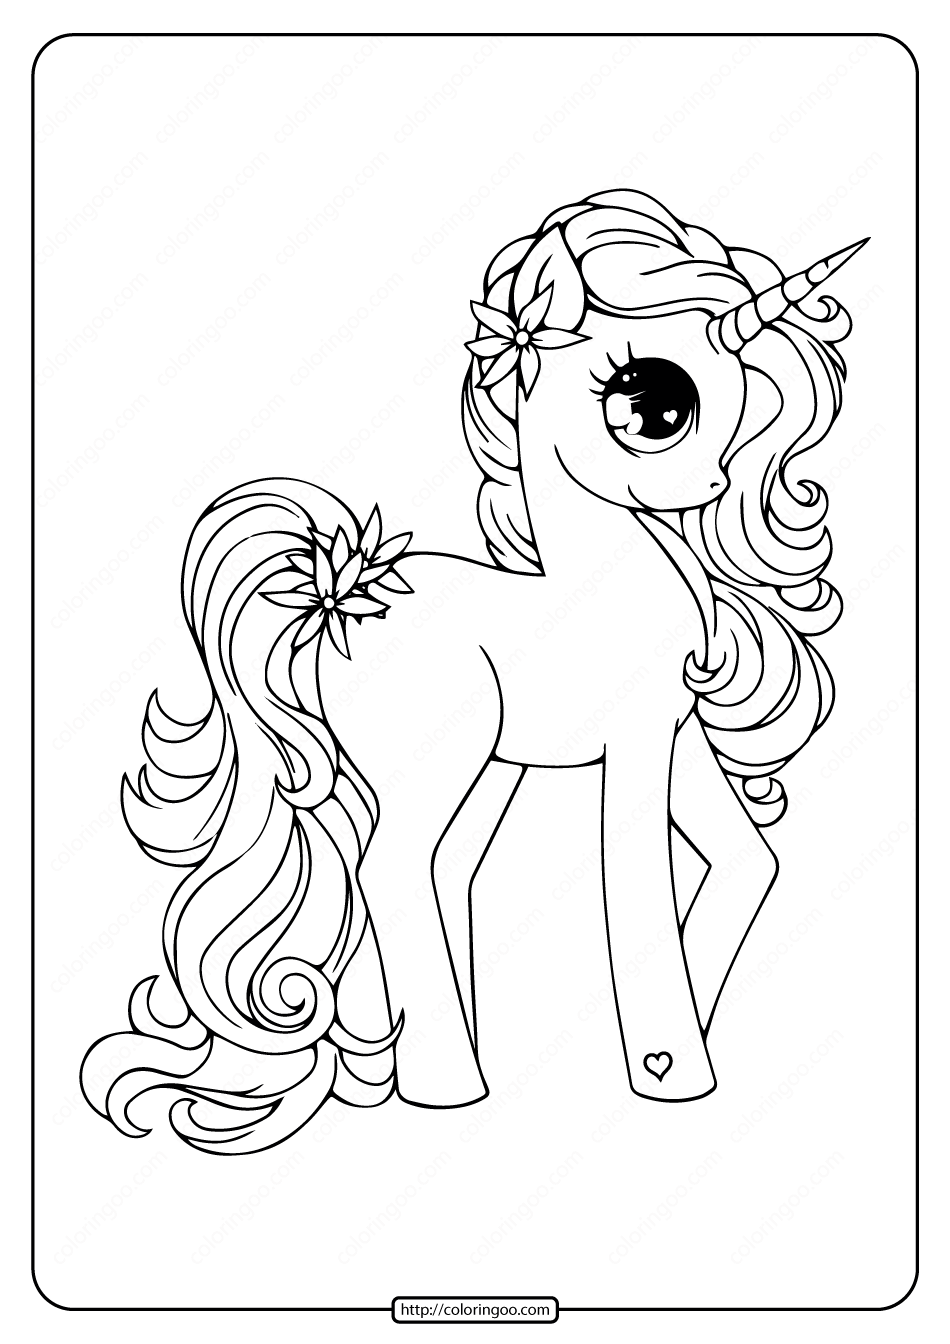 Printable Free Unicorn Pdf Coloring Book Unicorn Coloring Pages Witch Coloring Pages Coloring Pages